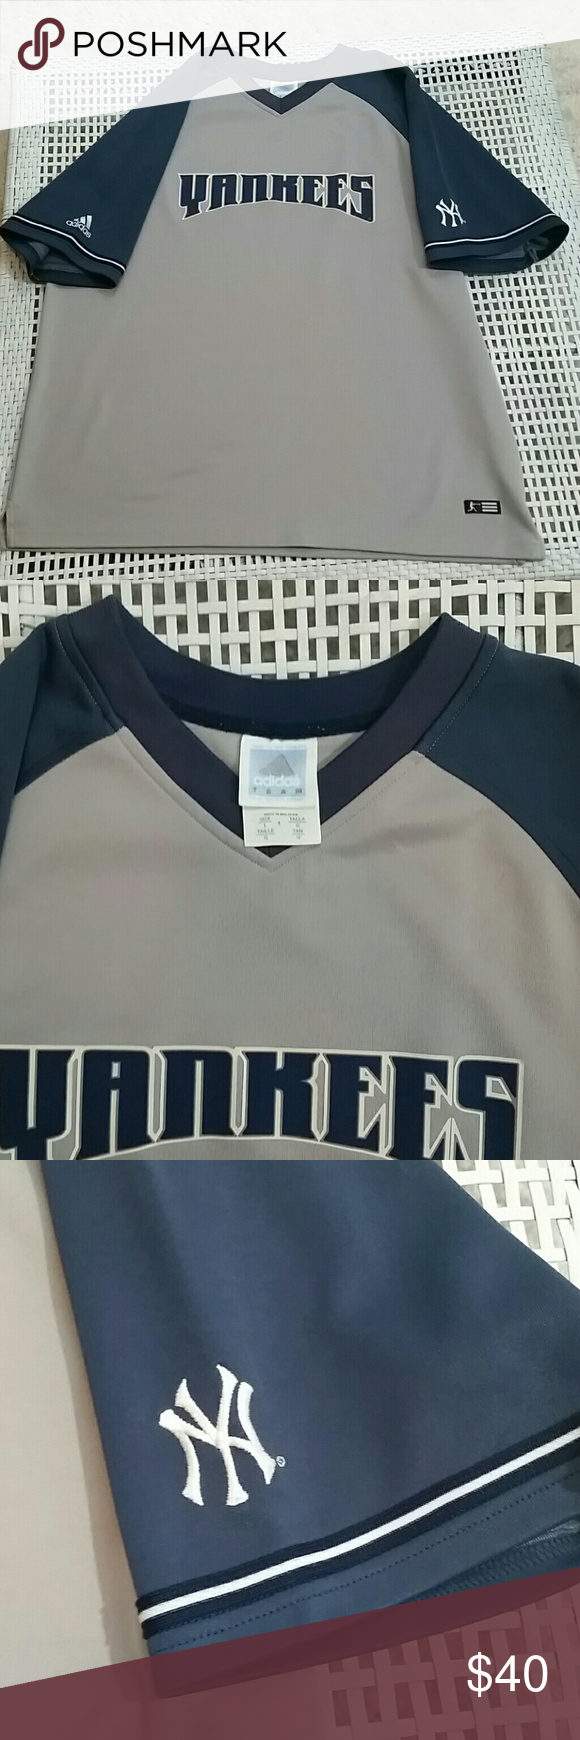 New York Yankees practice jersey 2a24836deaa